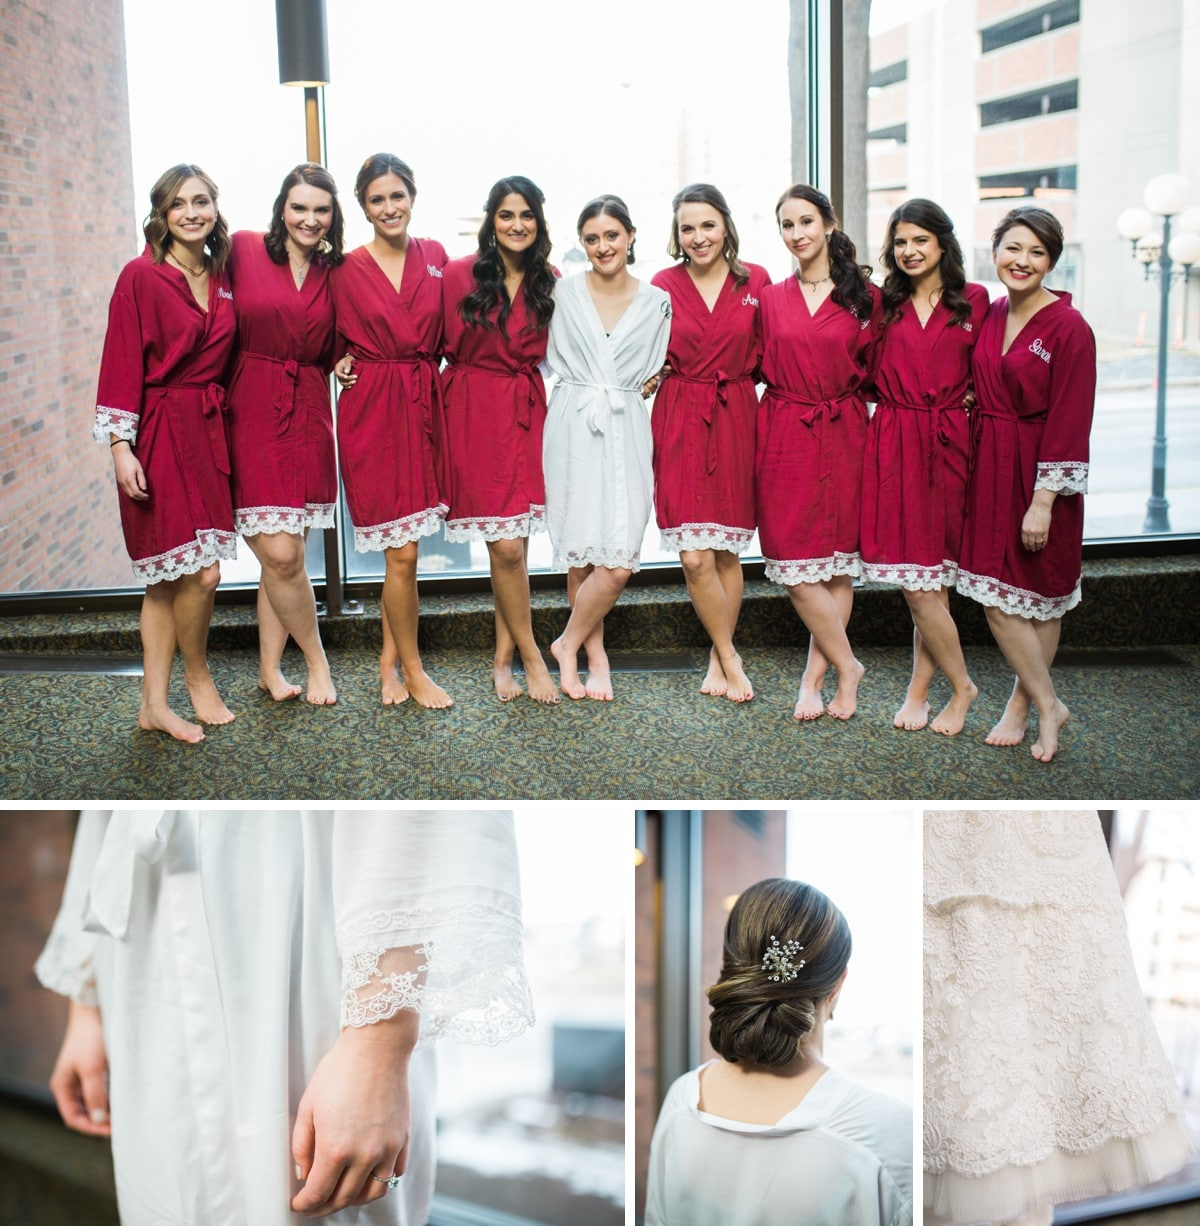 Bride and Bridesmaids in Robes, St. Louis Wedding Photographer